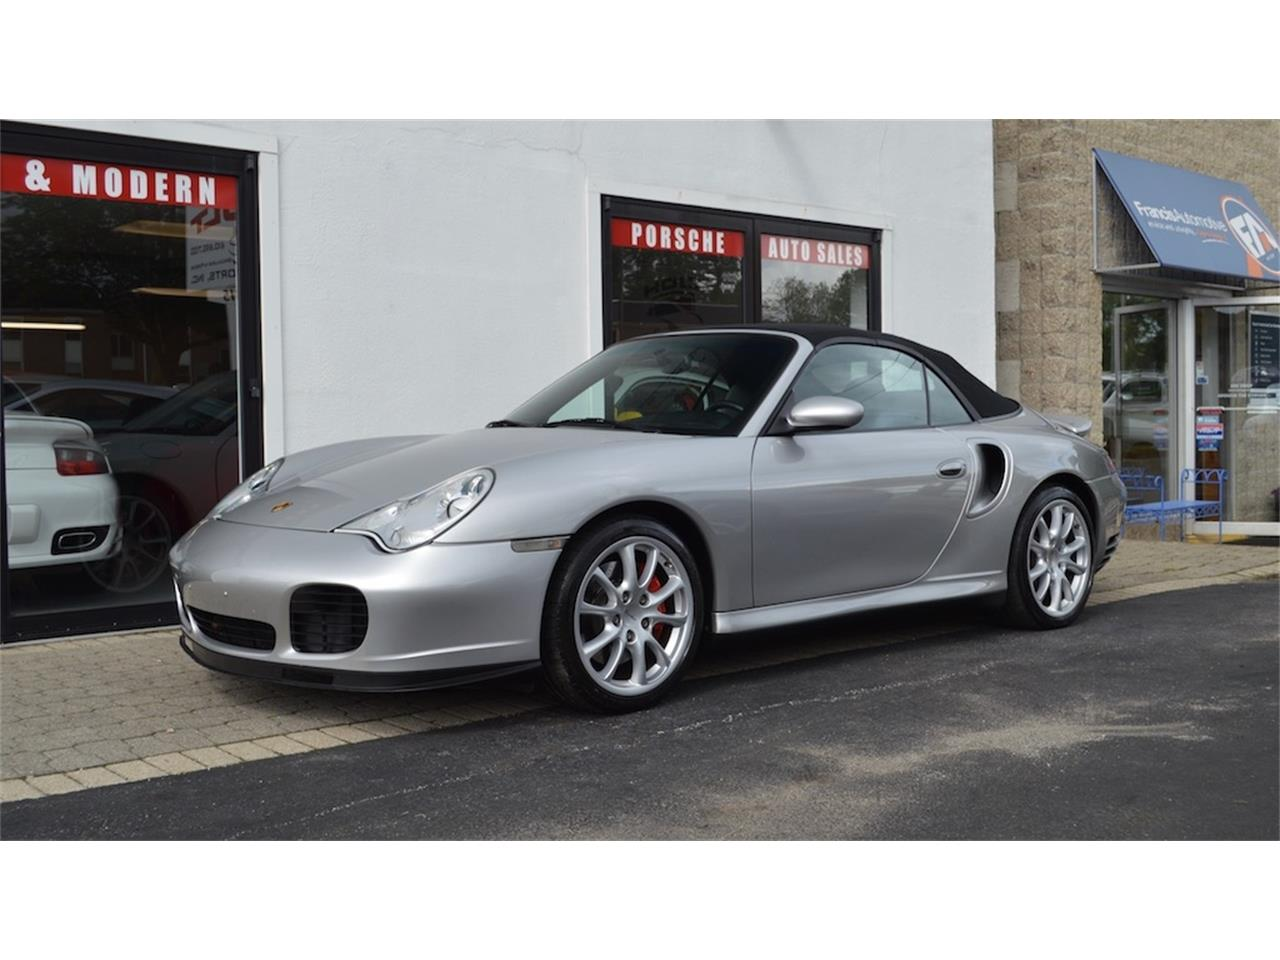 Large Picture of '04 Porsche 996 Turbo Cabriolet located in West Chester Pennsylvania - NQV0